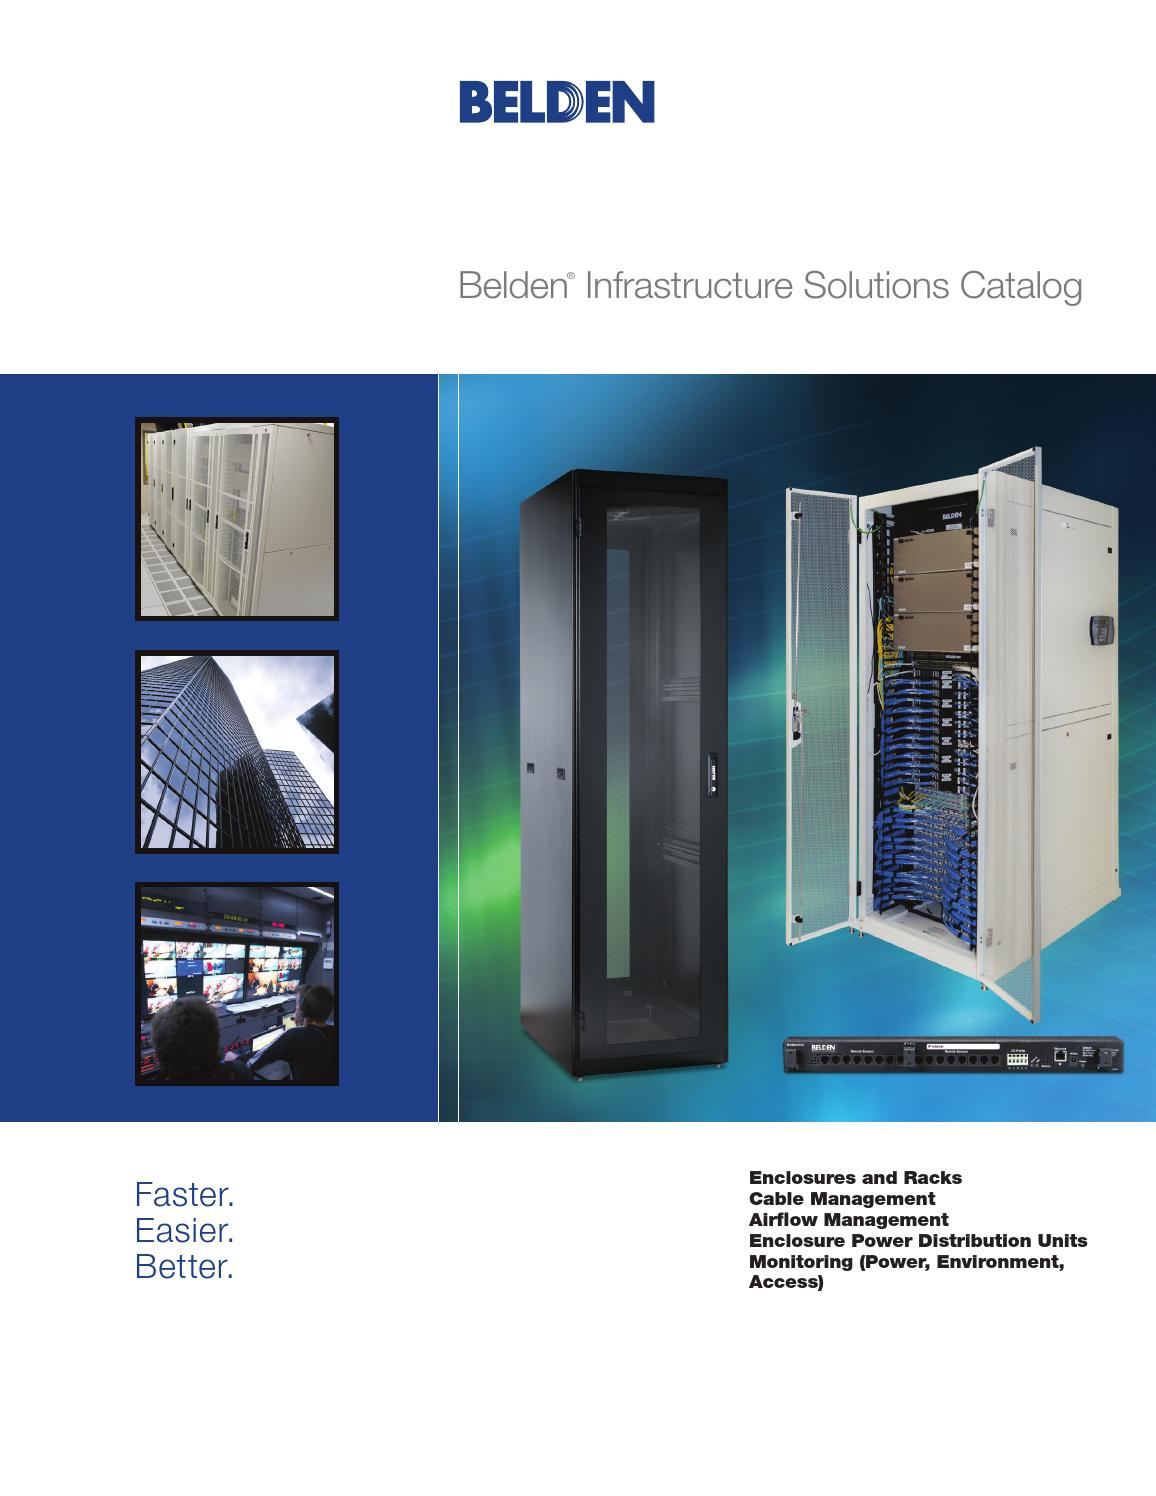 Belden infrastructure solutions catalog by SUCABSA - issuu